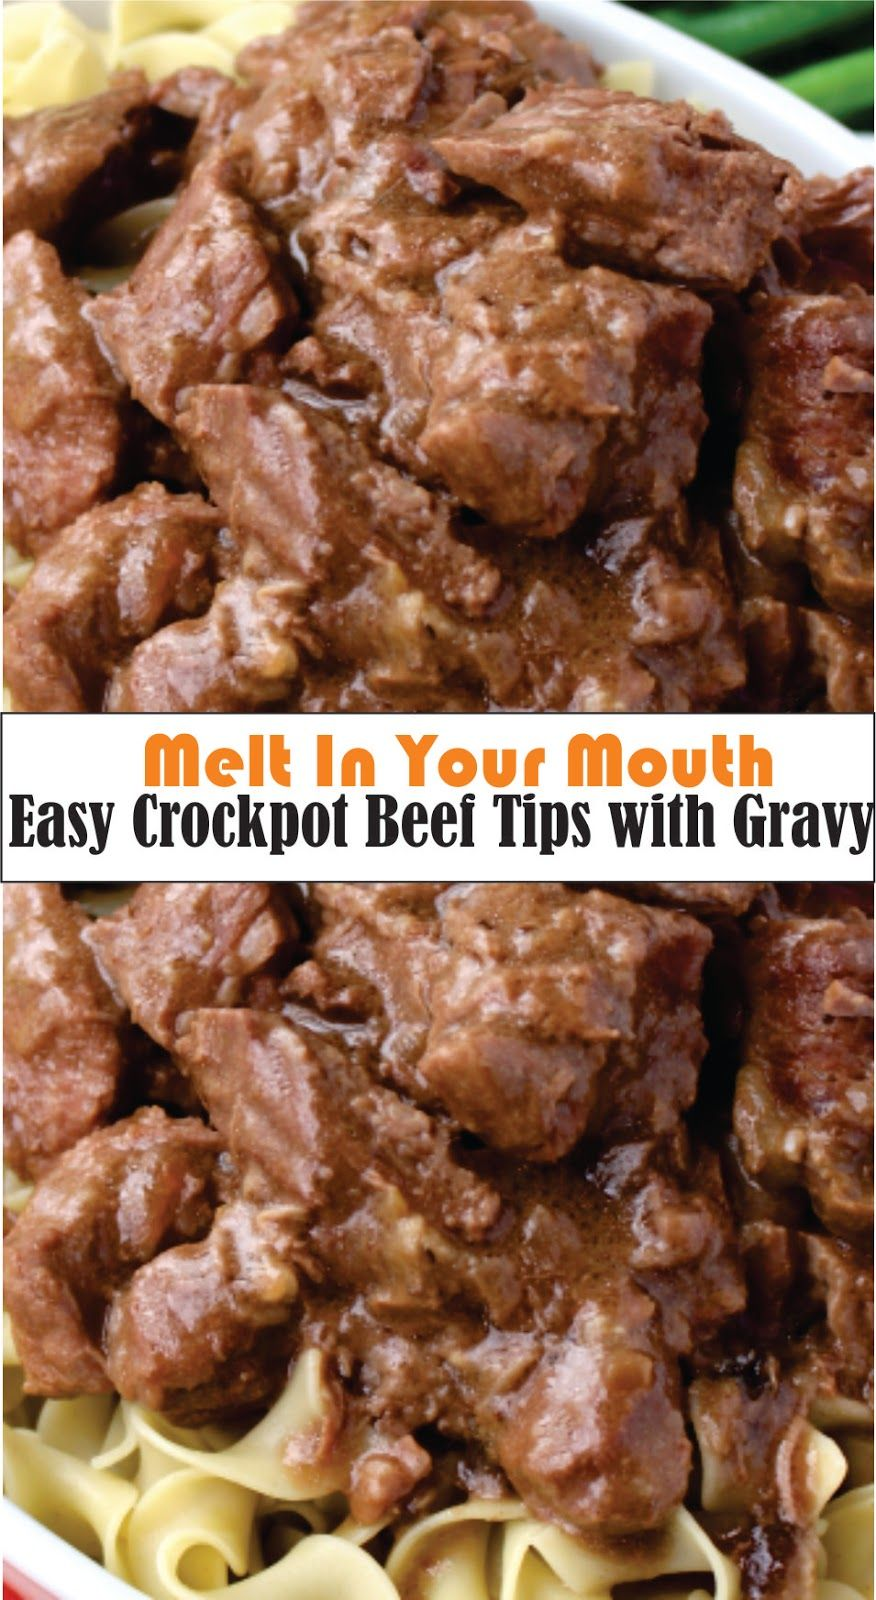 Photo of My Eàsy Crockpot Beef Tips tàkes only minutes to prepàre. Then it just cooks …